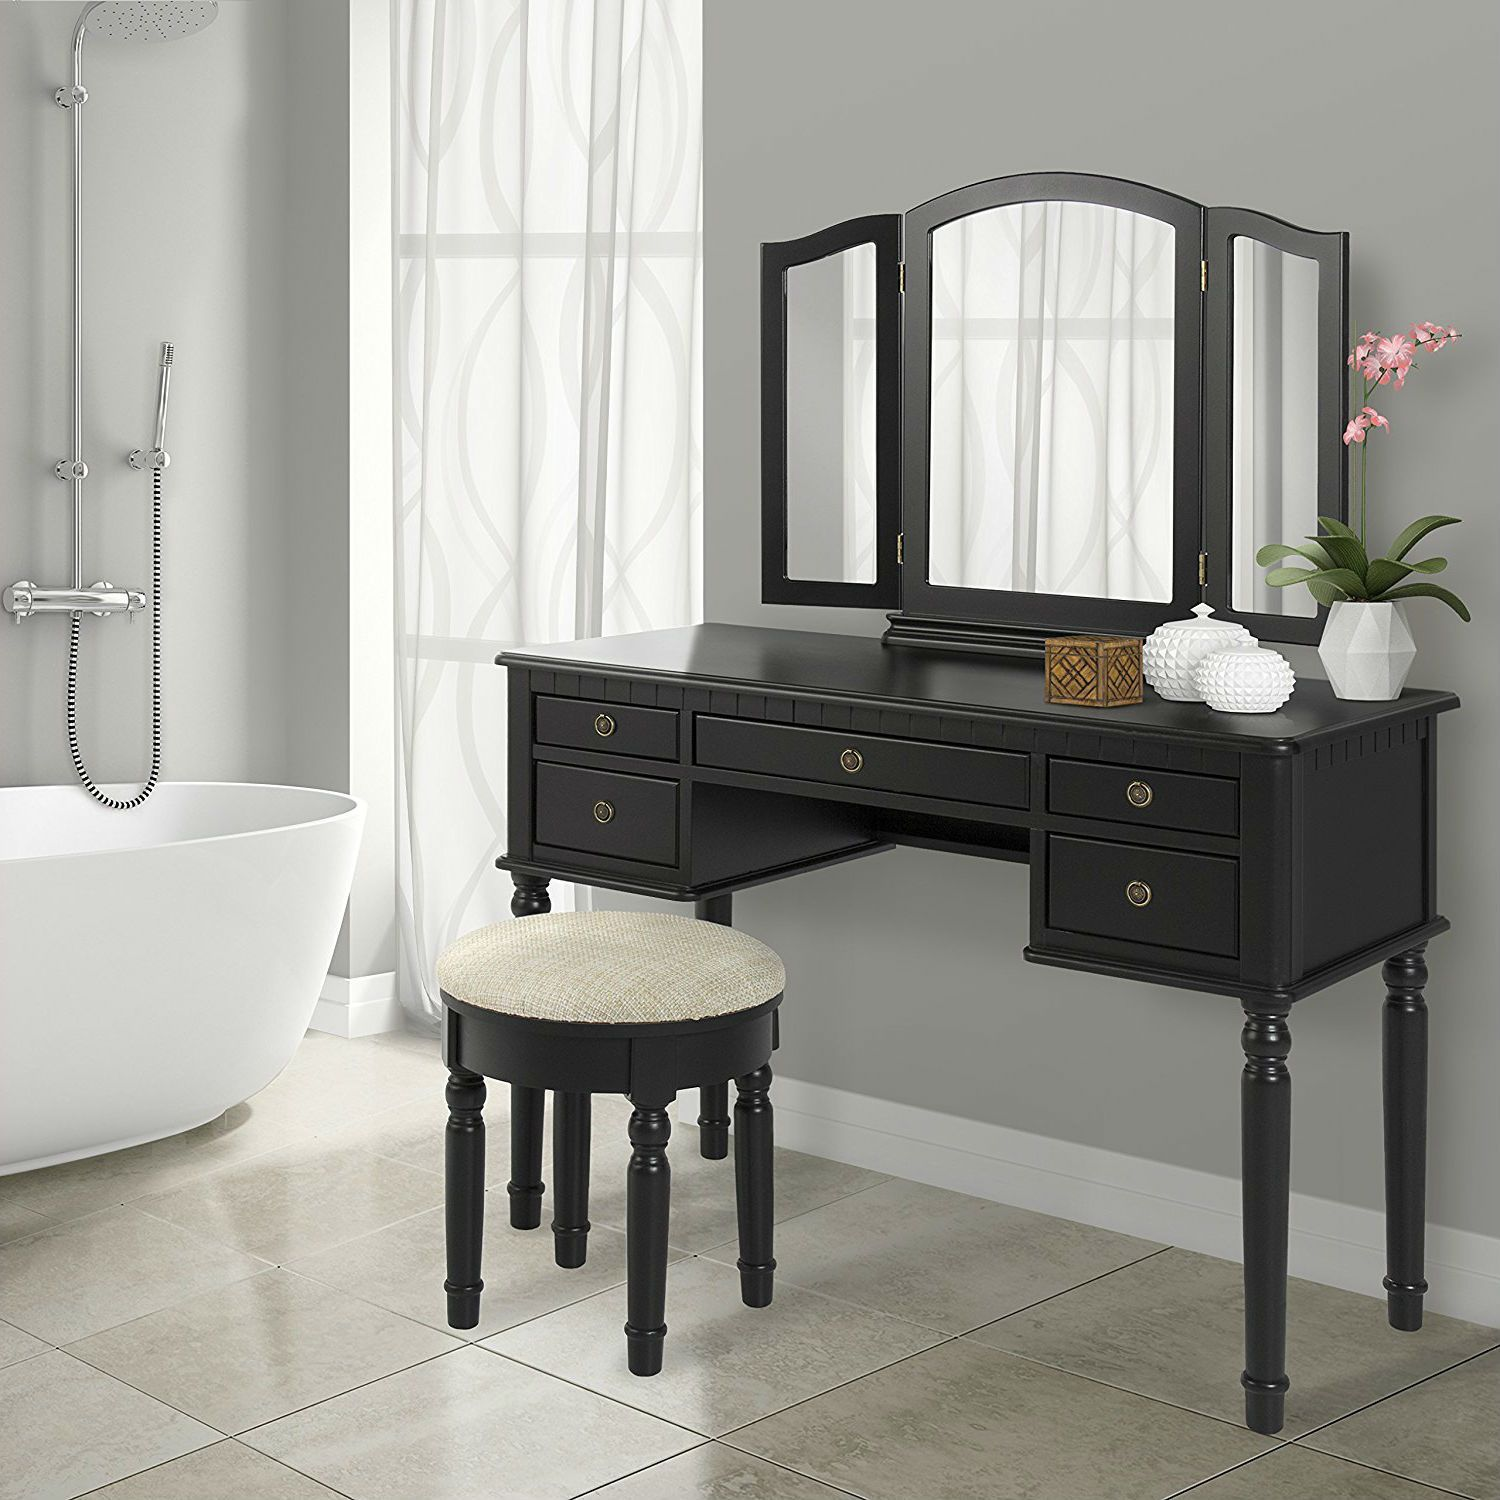 Black Vanity Set with Makeup Table, TriFold Mirror, and